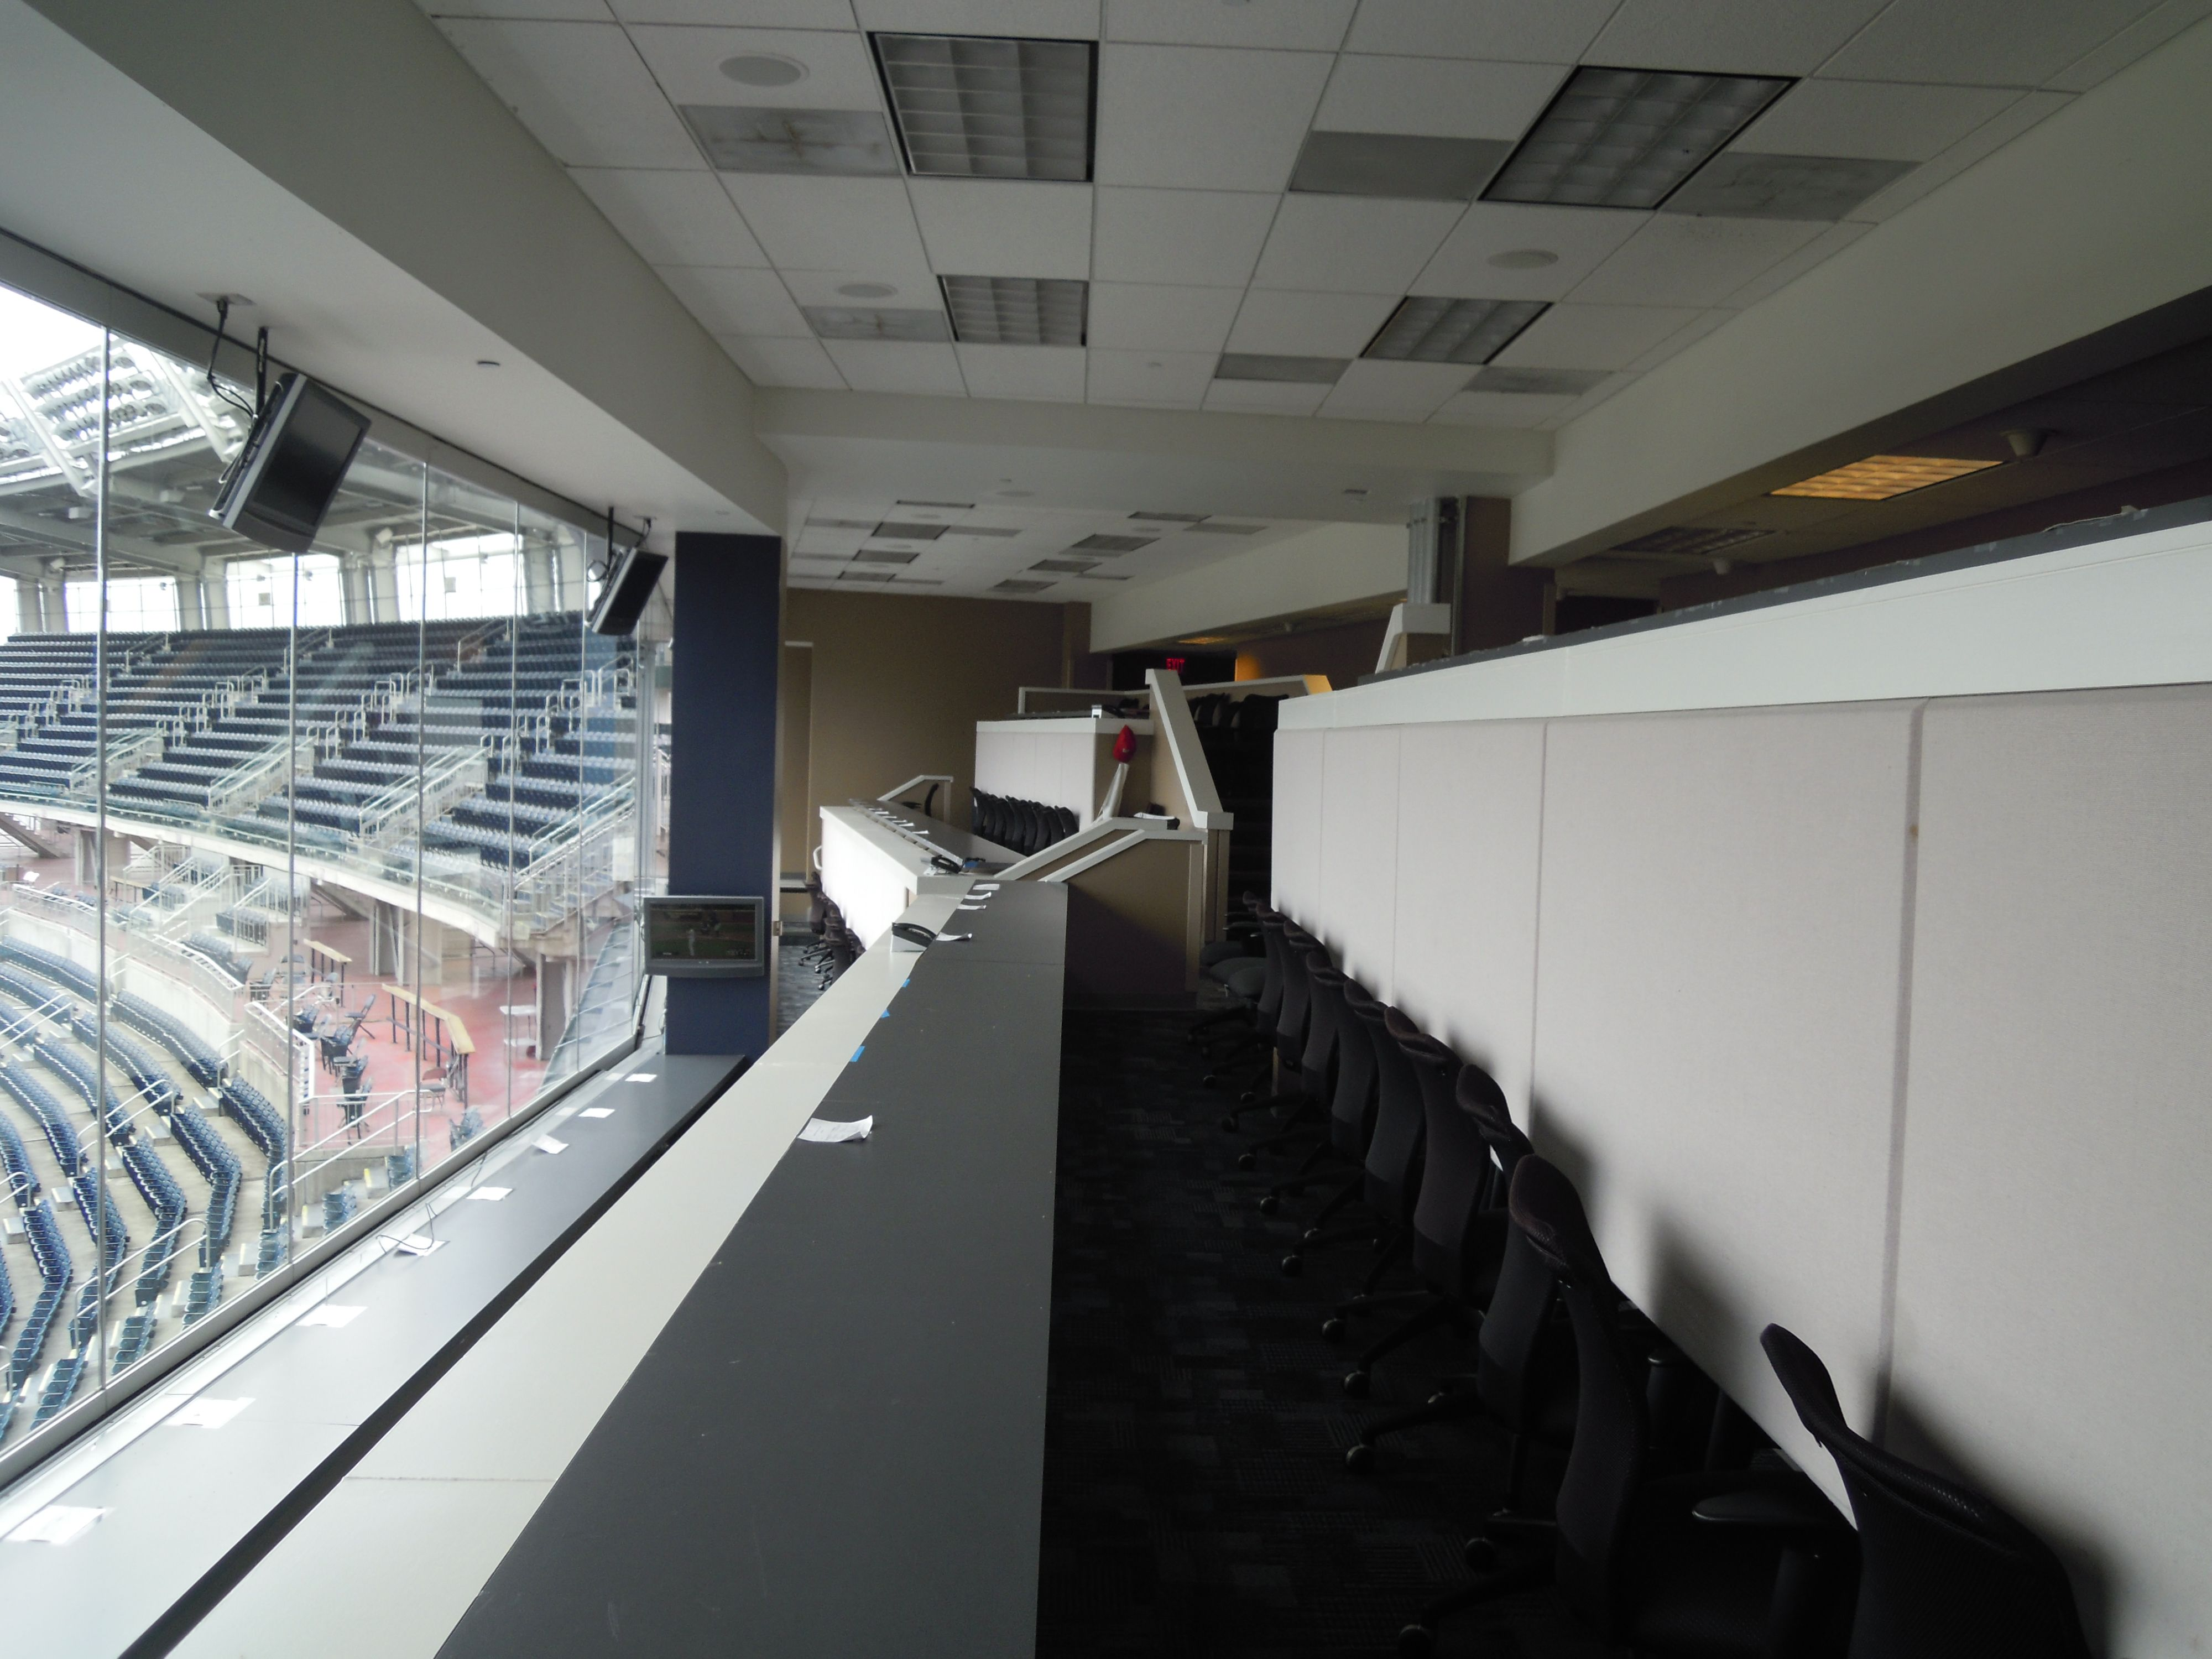 the press box (not broadcast booth) Washington nationals